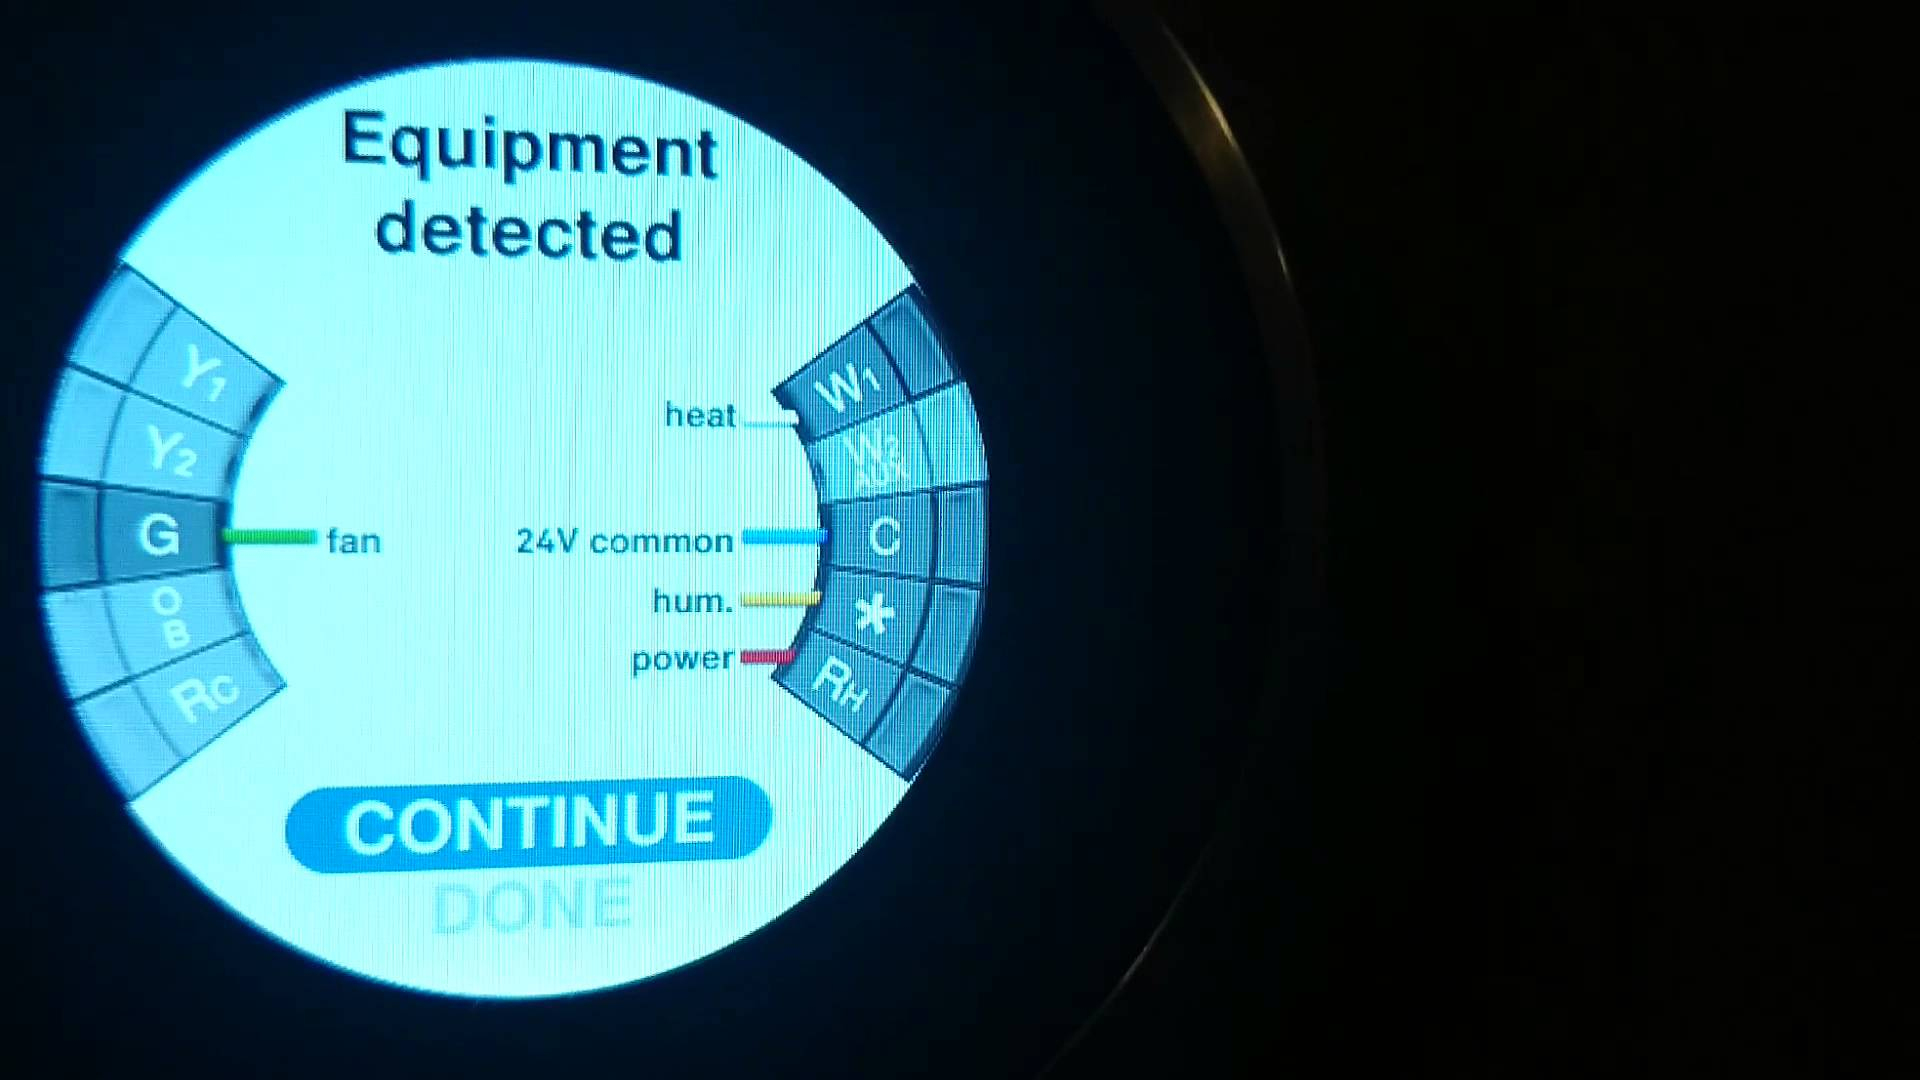 Wiring Diagram For Nest Thermostat With Humidifier - Wiring Diagrams - Nest Second Generation Wiring Diagram